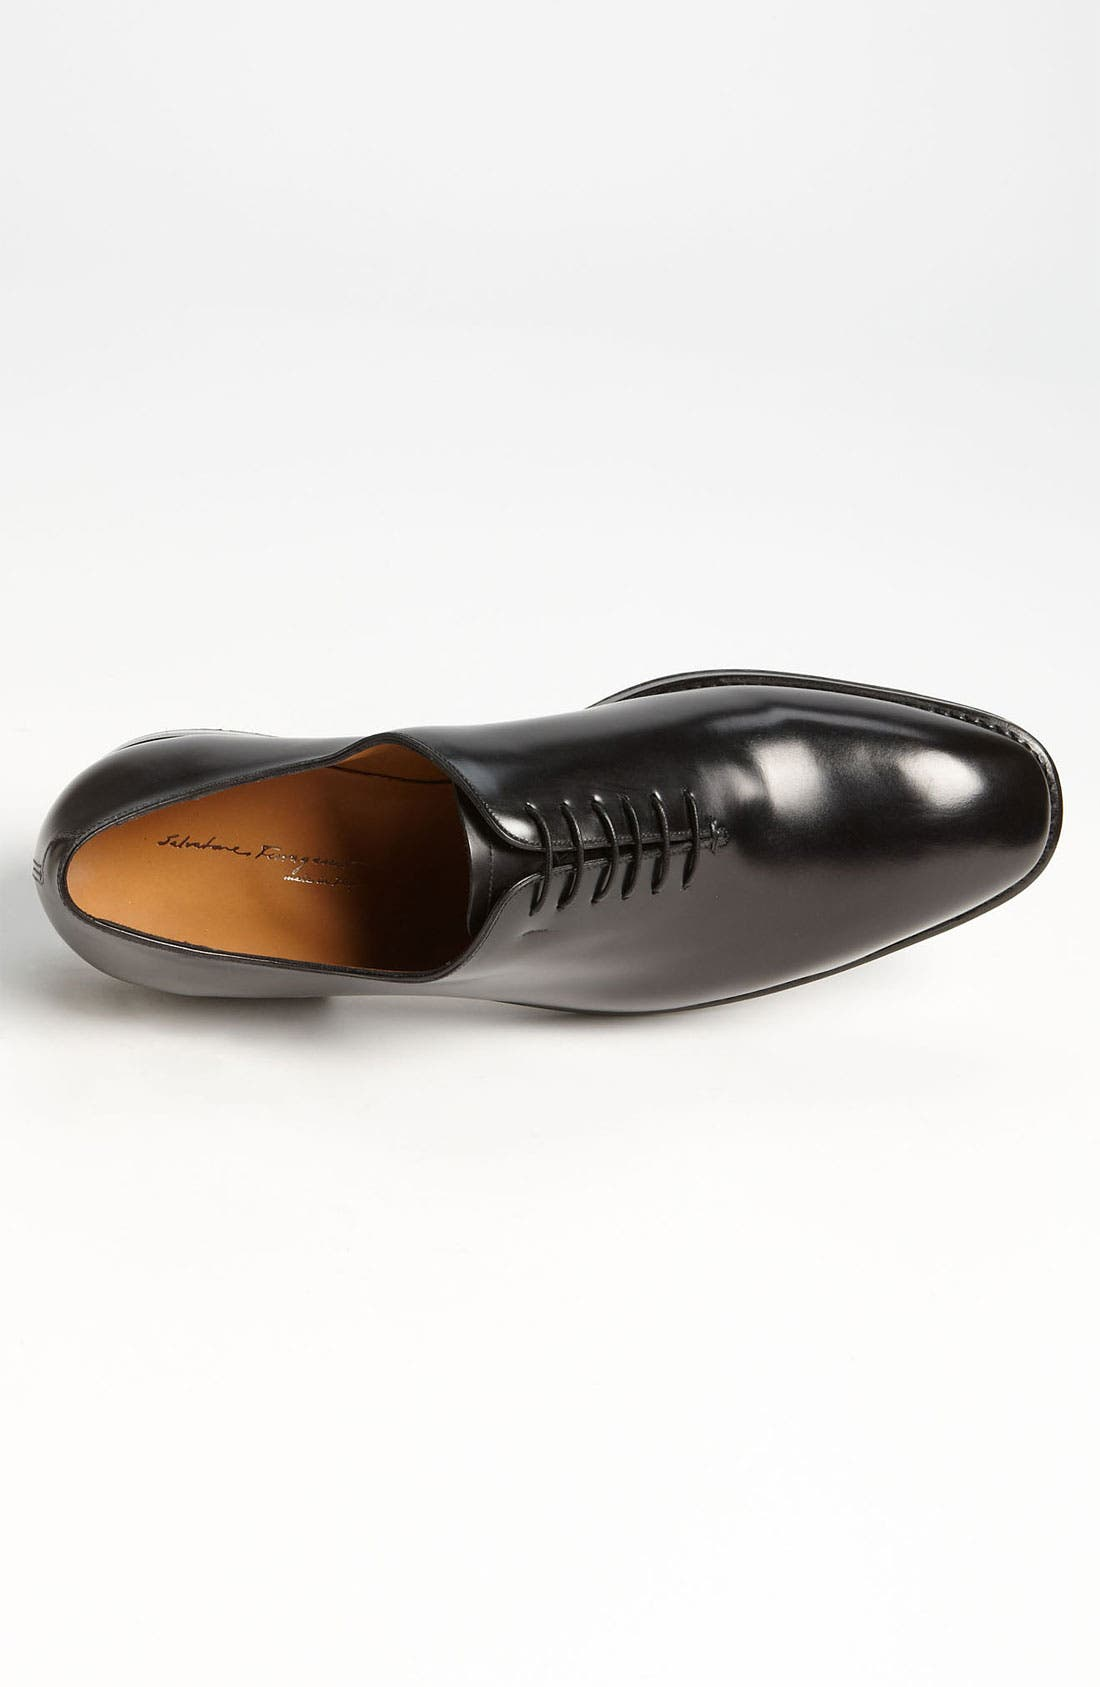 Alternate Image 3  - Salvatore Ferragamo 'Carmelo' Plain Toe Oxford